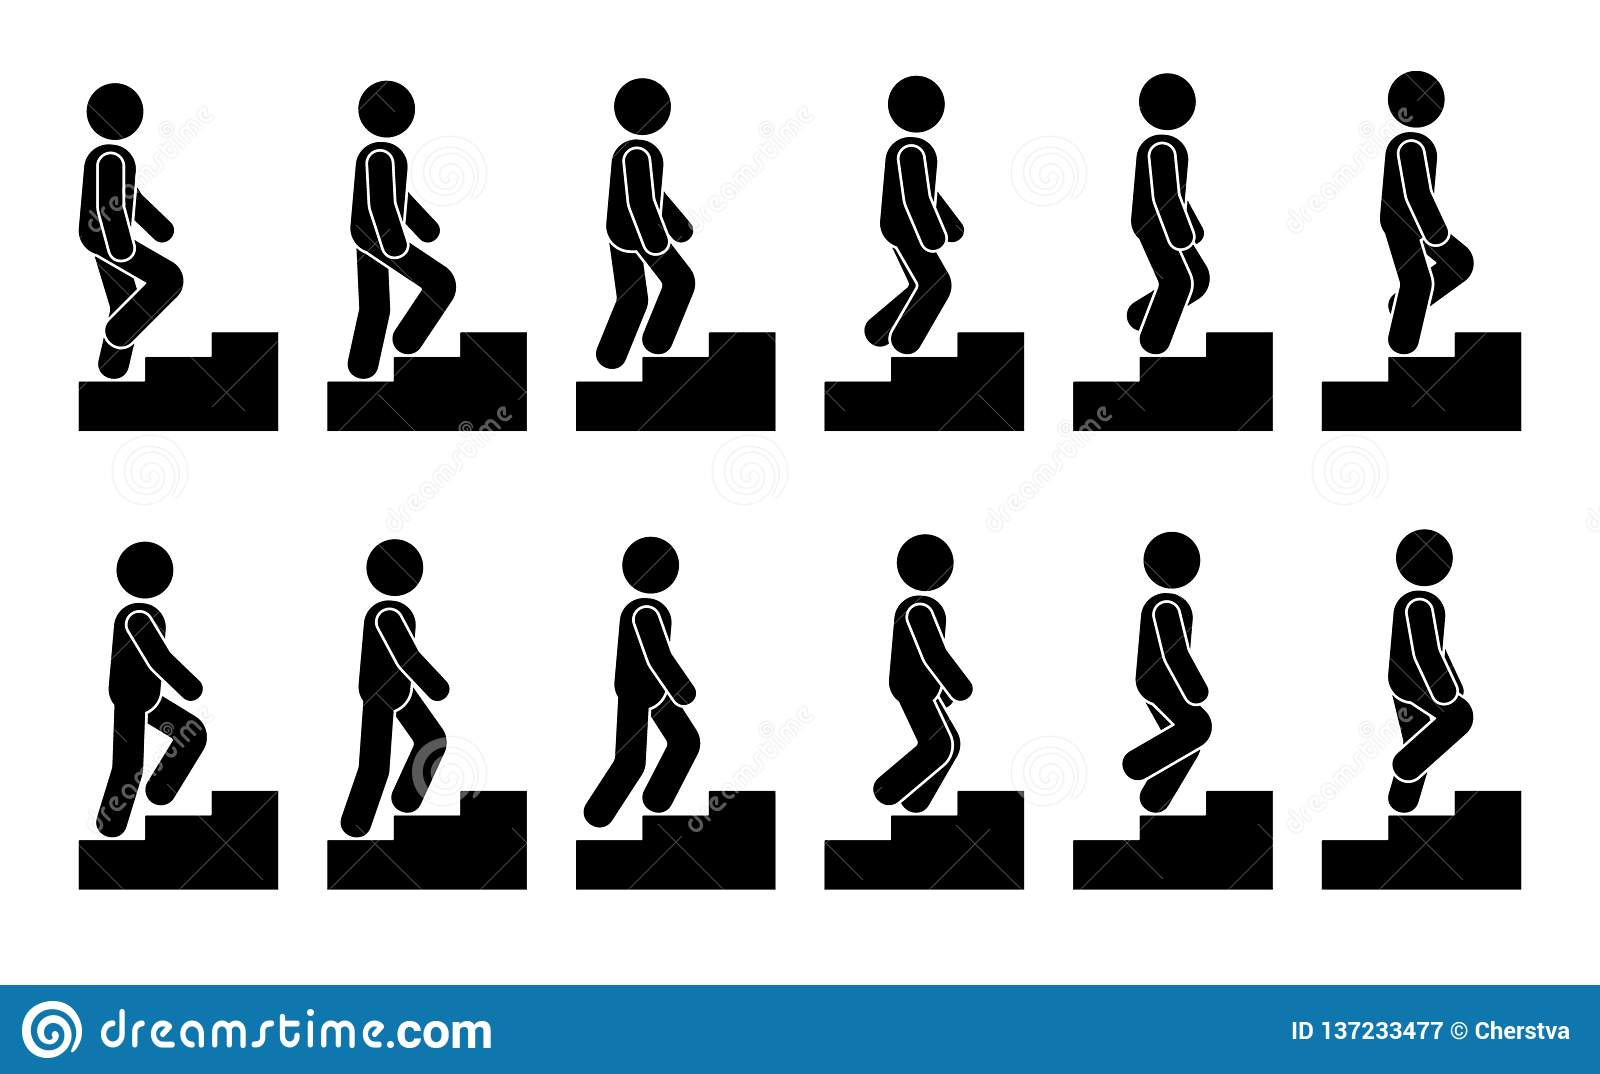 Stick figure male on stairs icon set. Vector man walking step by step sequence pictogram.